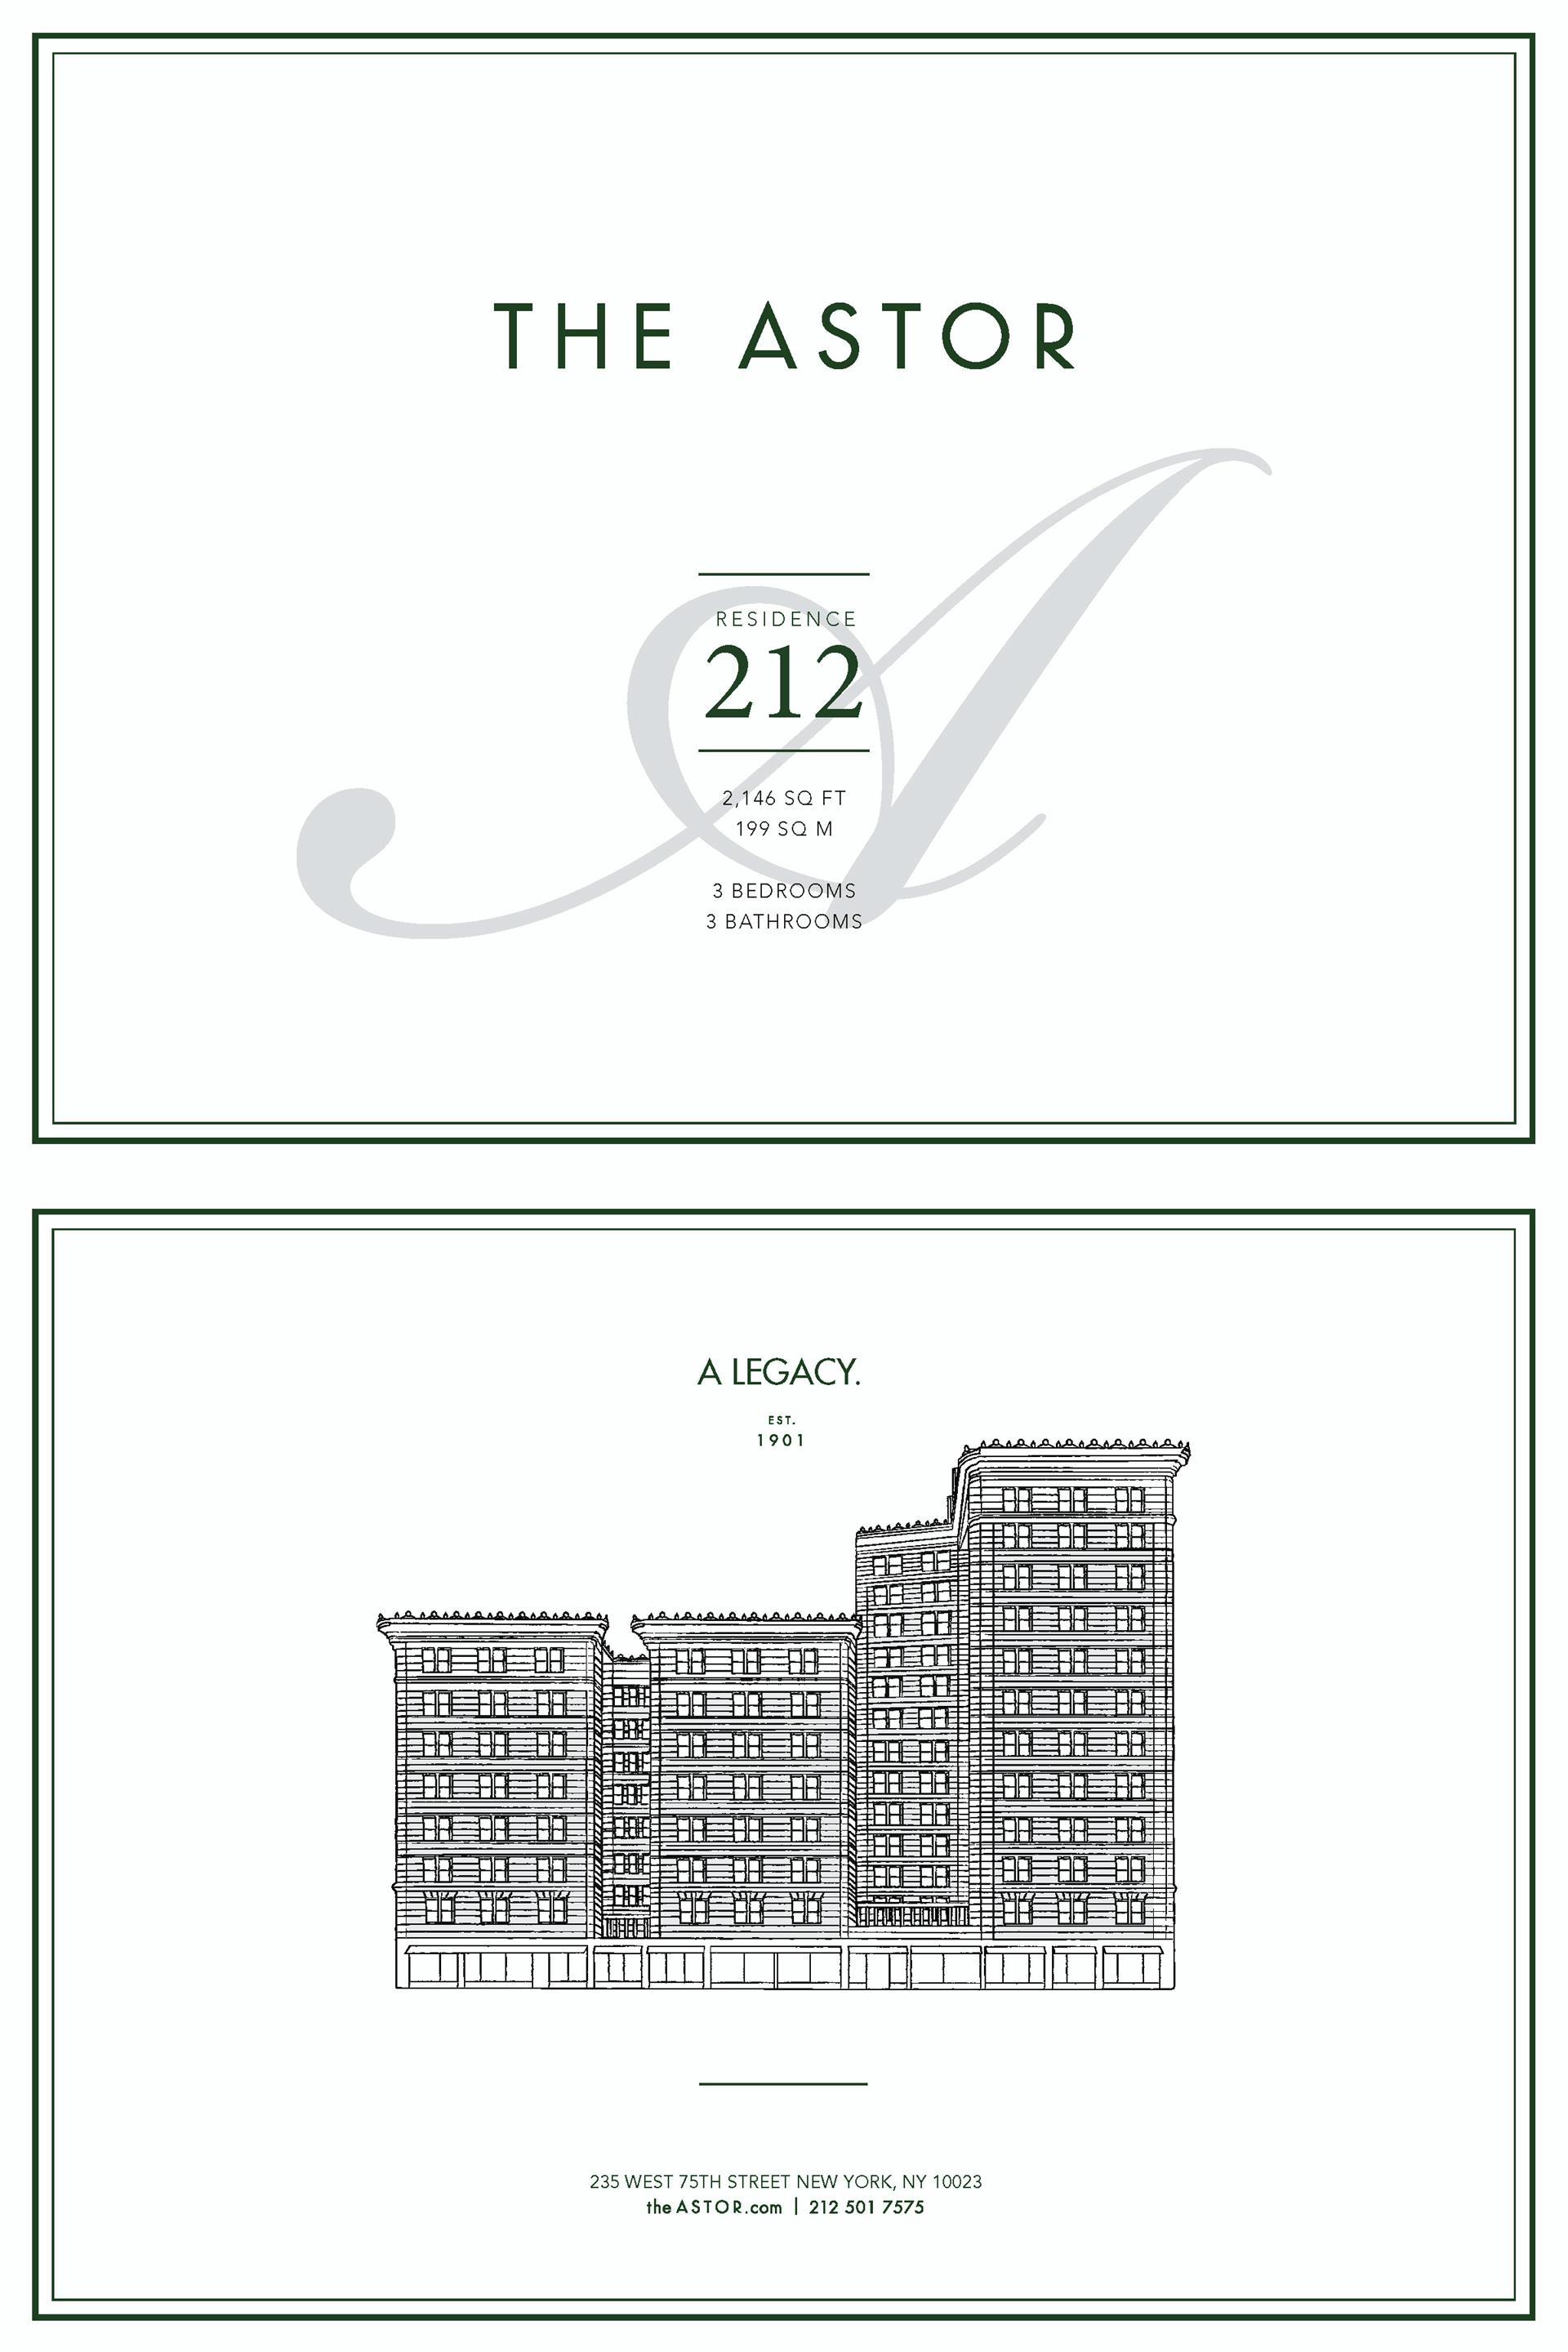 Floor plan of The Astor, 235 West 75th St, 212 - Upper West Side, New York